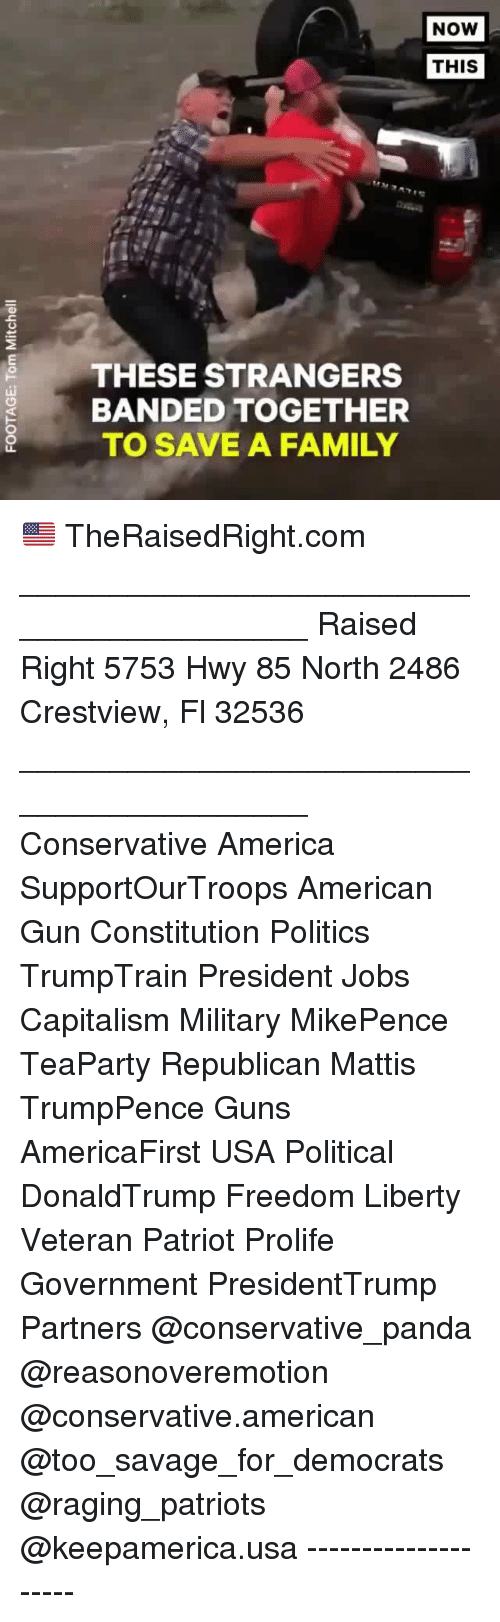 Mattis: NOW  THIS  THESE STRANGERS  BANDED TOGETHER  TO SAVE A FAMILY 🇺🇸 TheRaisedRight.com _________________________________________ Raised Right 5753 Hwy 85 North 2486 Crestview, Fl 32536 _________________________________________ Conservative America SupportOurTroops American Gun Constitution Politics TrumpTrain President Jobs Capitalism Military MikePence TeaParty Republican Mattis TrumpPence Guns AmericaFirst USA Political DonaldTrump Freedom Liberty Veteran Patriot Prolife Government PresidentTrump Partners @conservative_panda @reasonoveremotion @conservative.american @too_savage_for_democrats @raging_patriots @keepamerica.usa --------------------